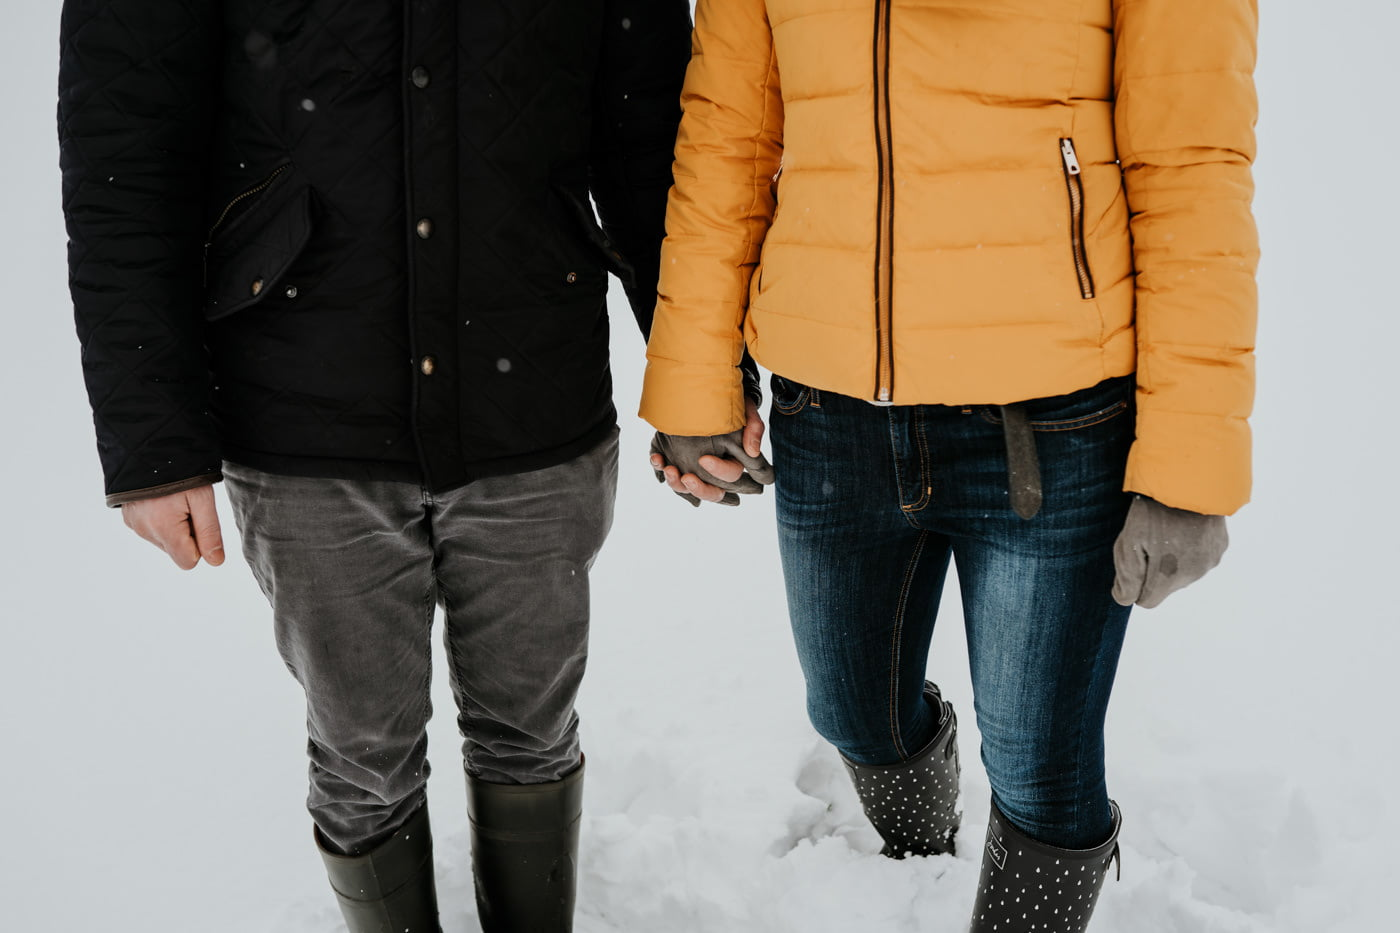 Sophie and Rob, Snow Engagement Shoot 5